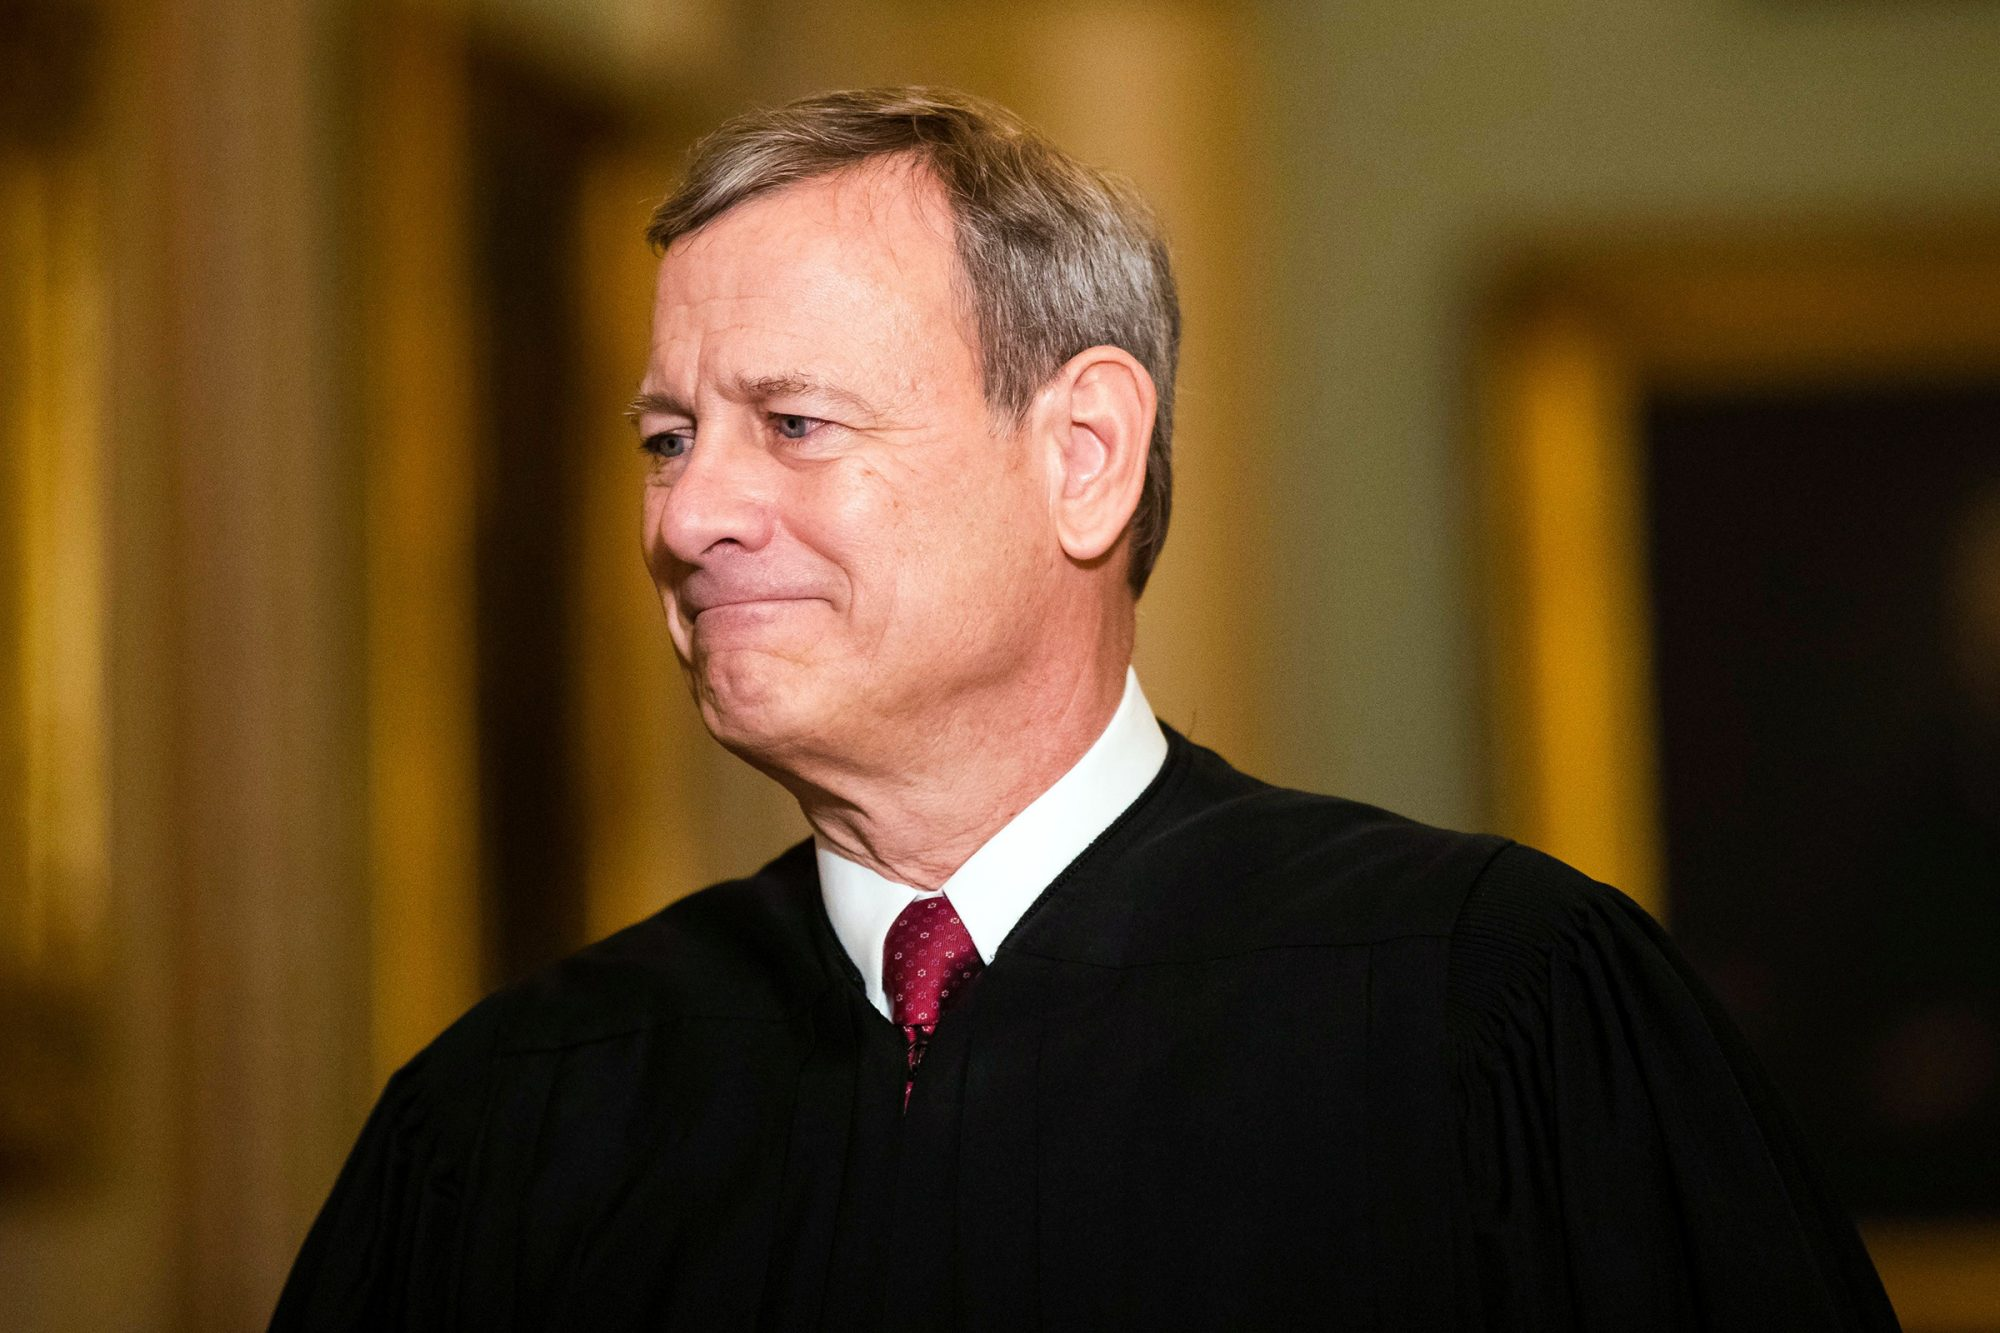 Chief Justice of the United States, John Roberts